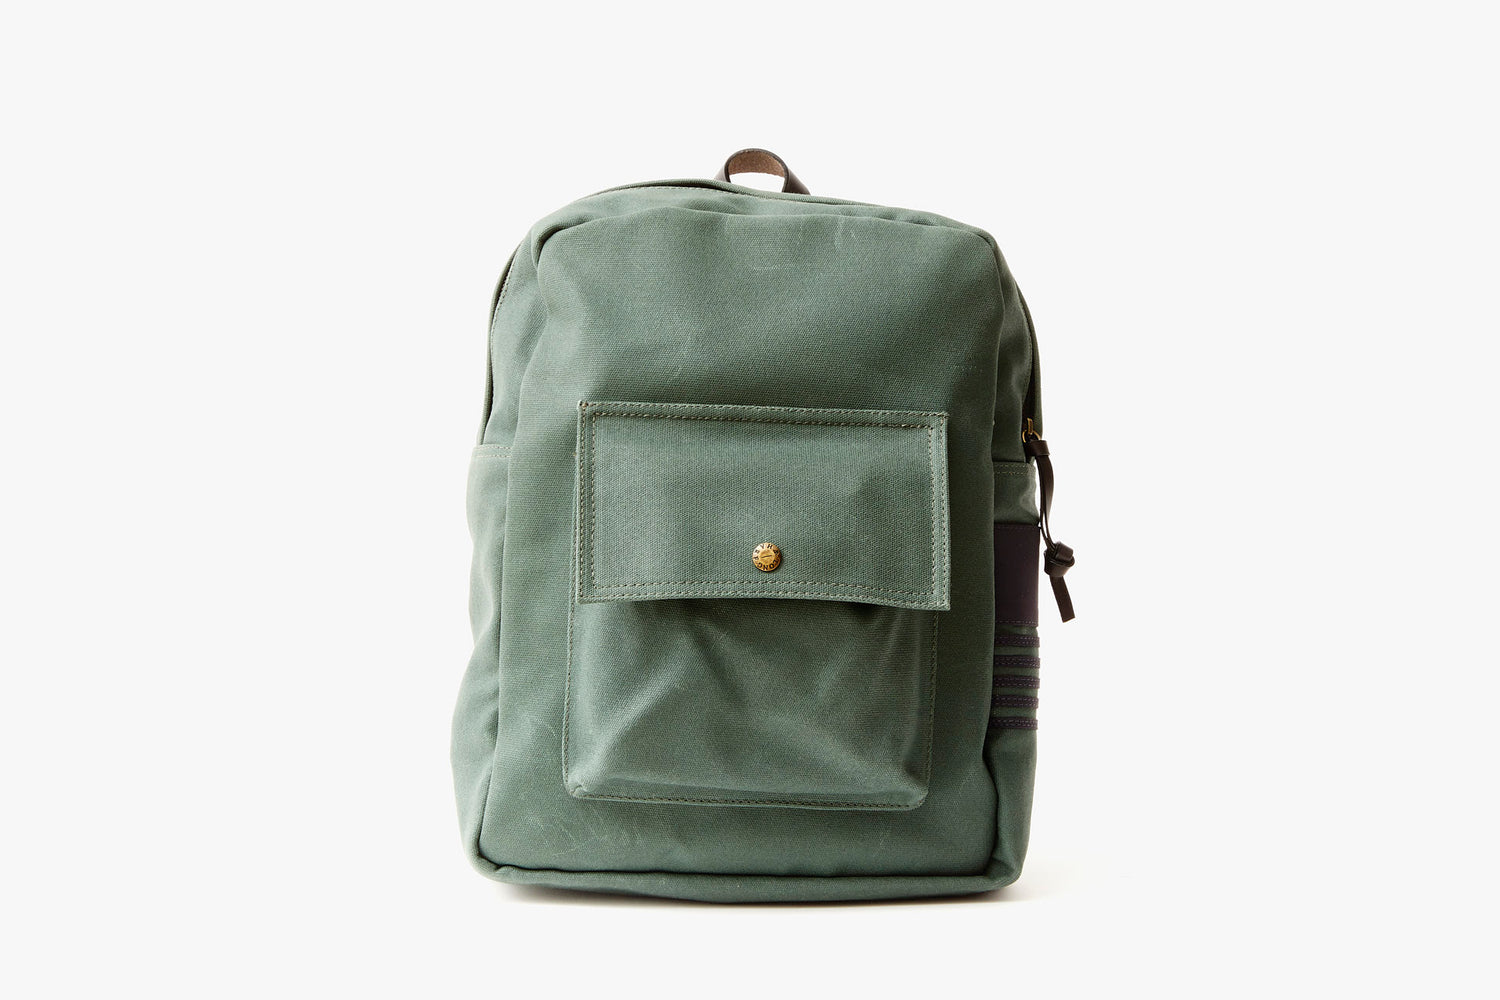 Long Wharf Supply Co. Ipswich Day Backpack - Pine - front view of backpack standing upright